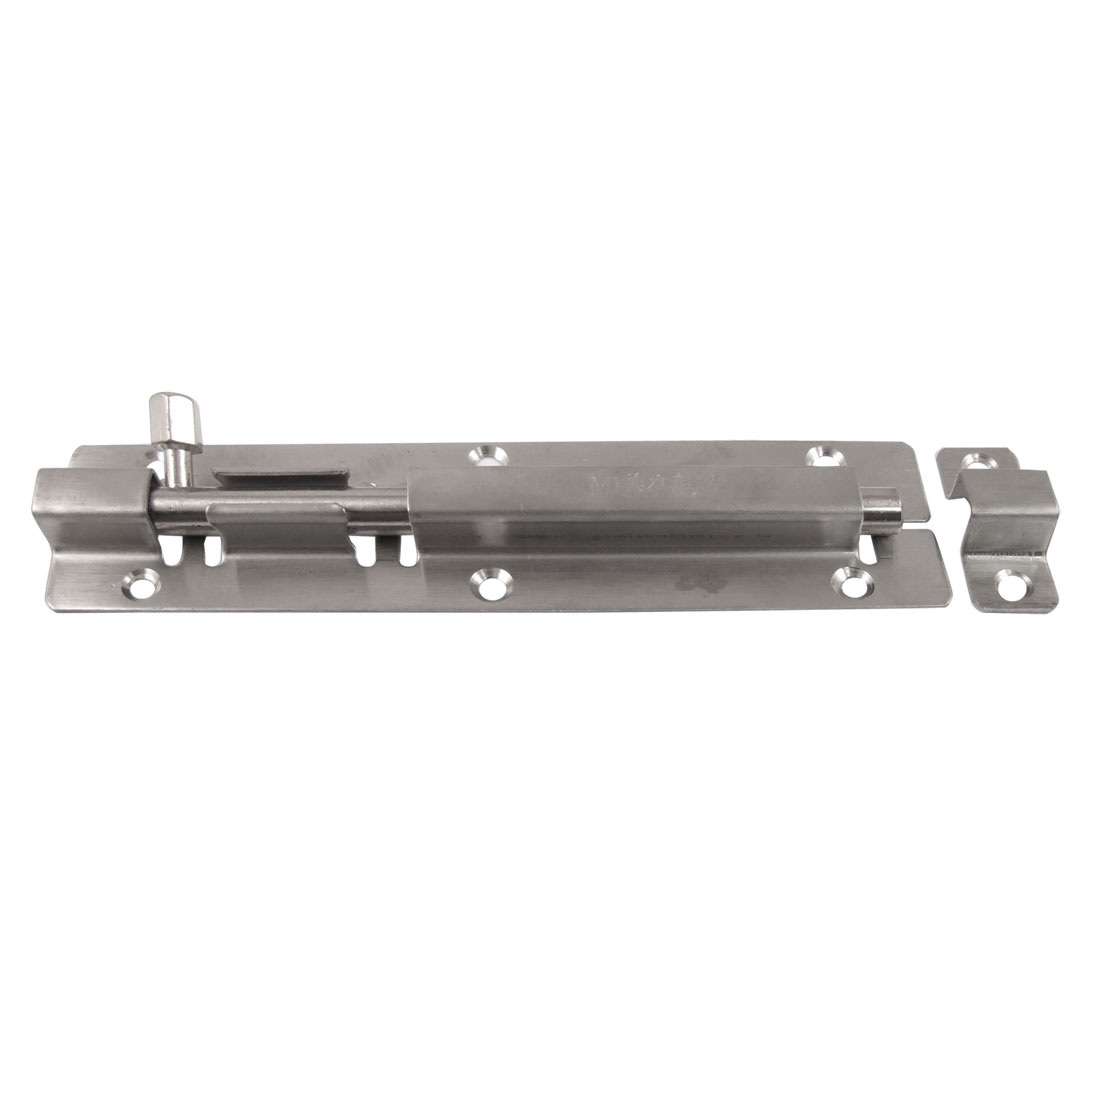 "6.5"" Safeguard Door Latch Sliding Locked Metal Barrel Bolt"